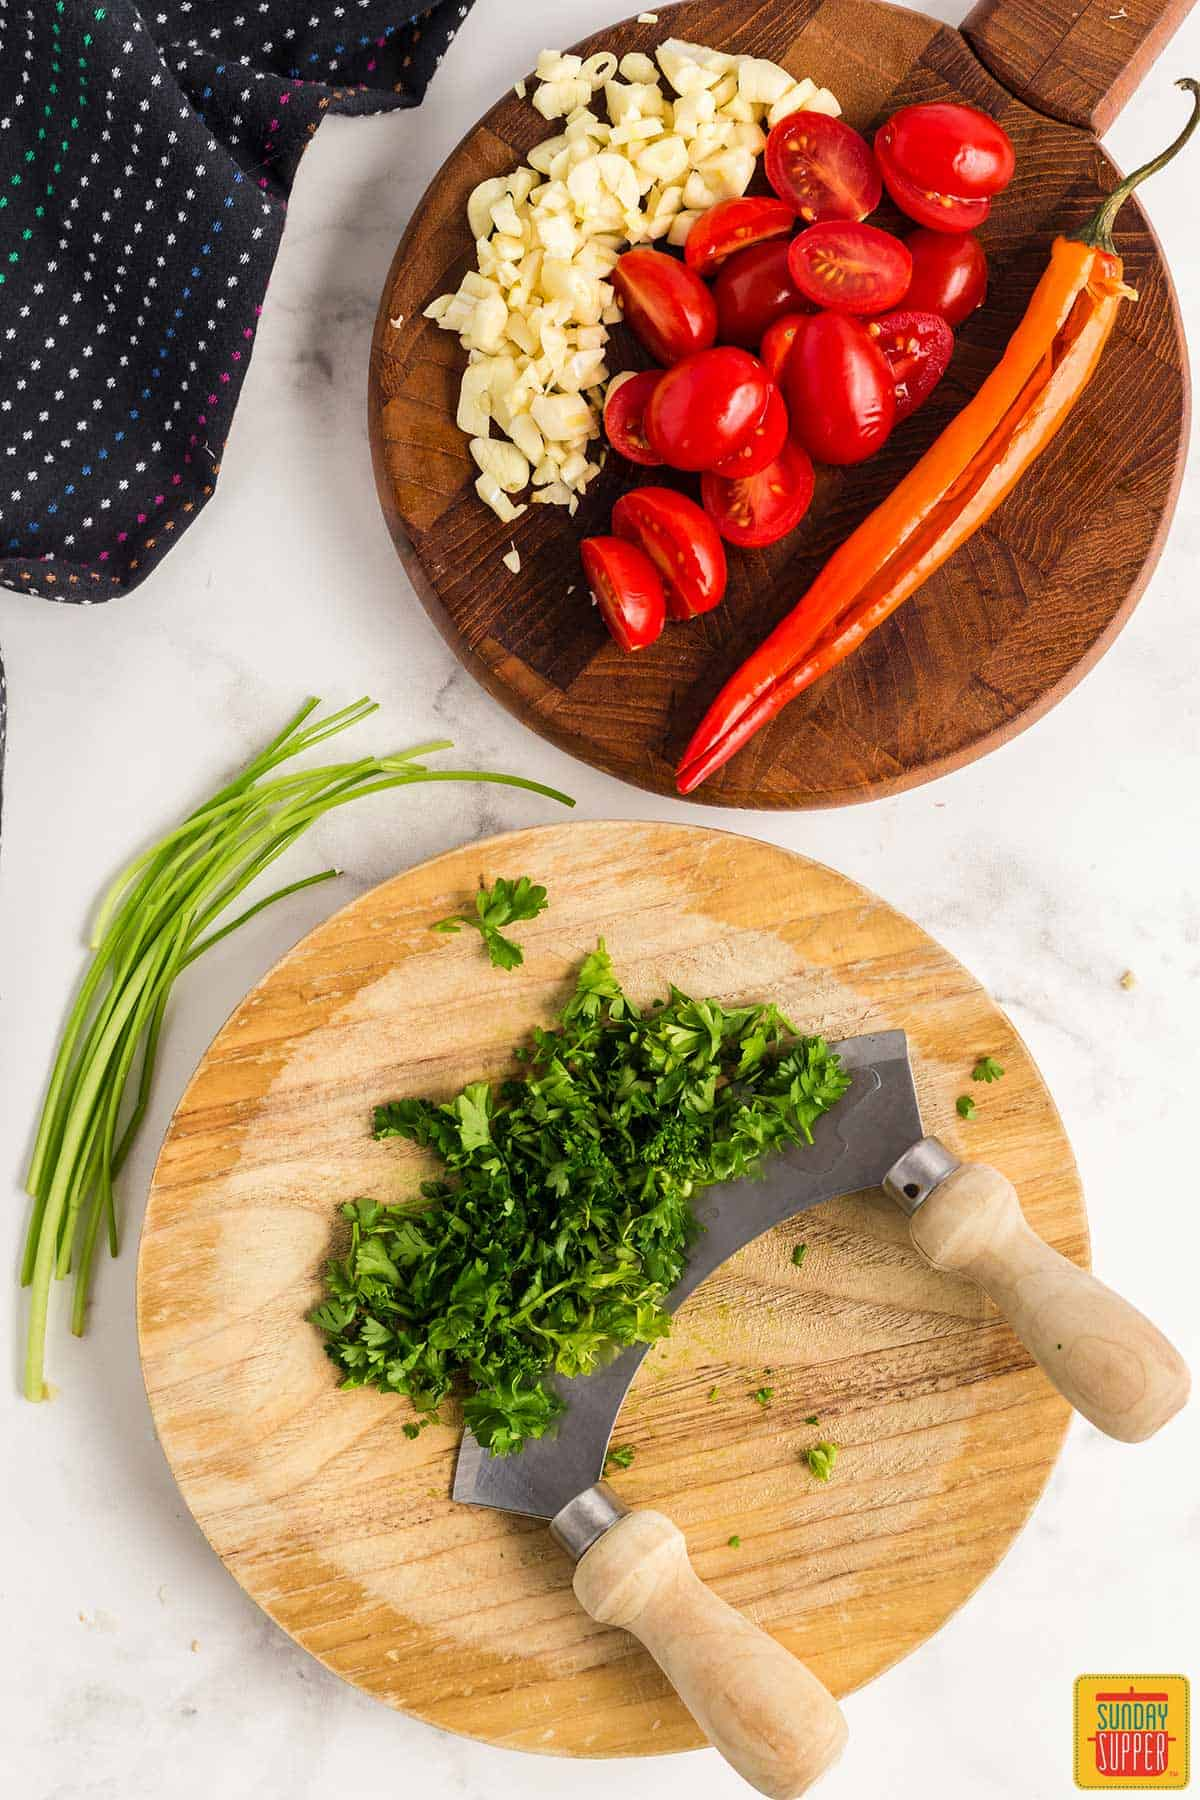 Chopped parsley next to sliced red chili pepper, minced garlic, and halved cherry tomatoes on two separate wooden boards